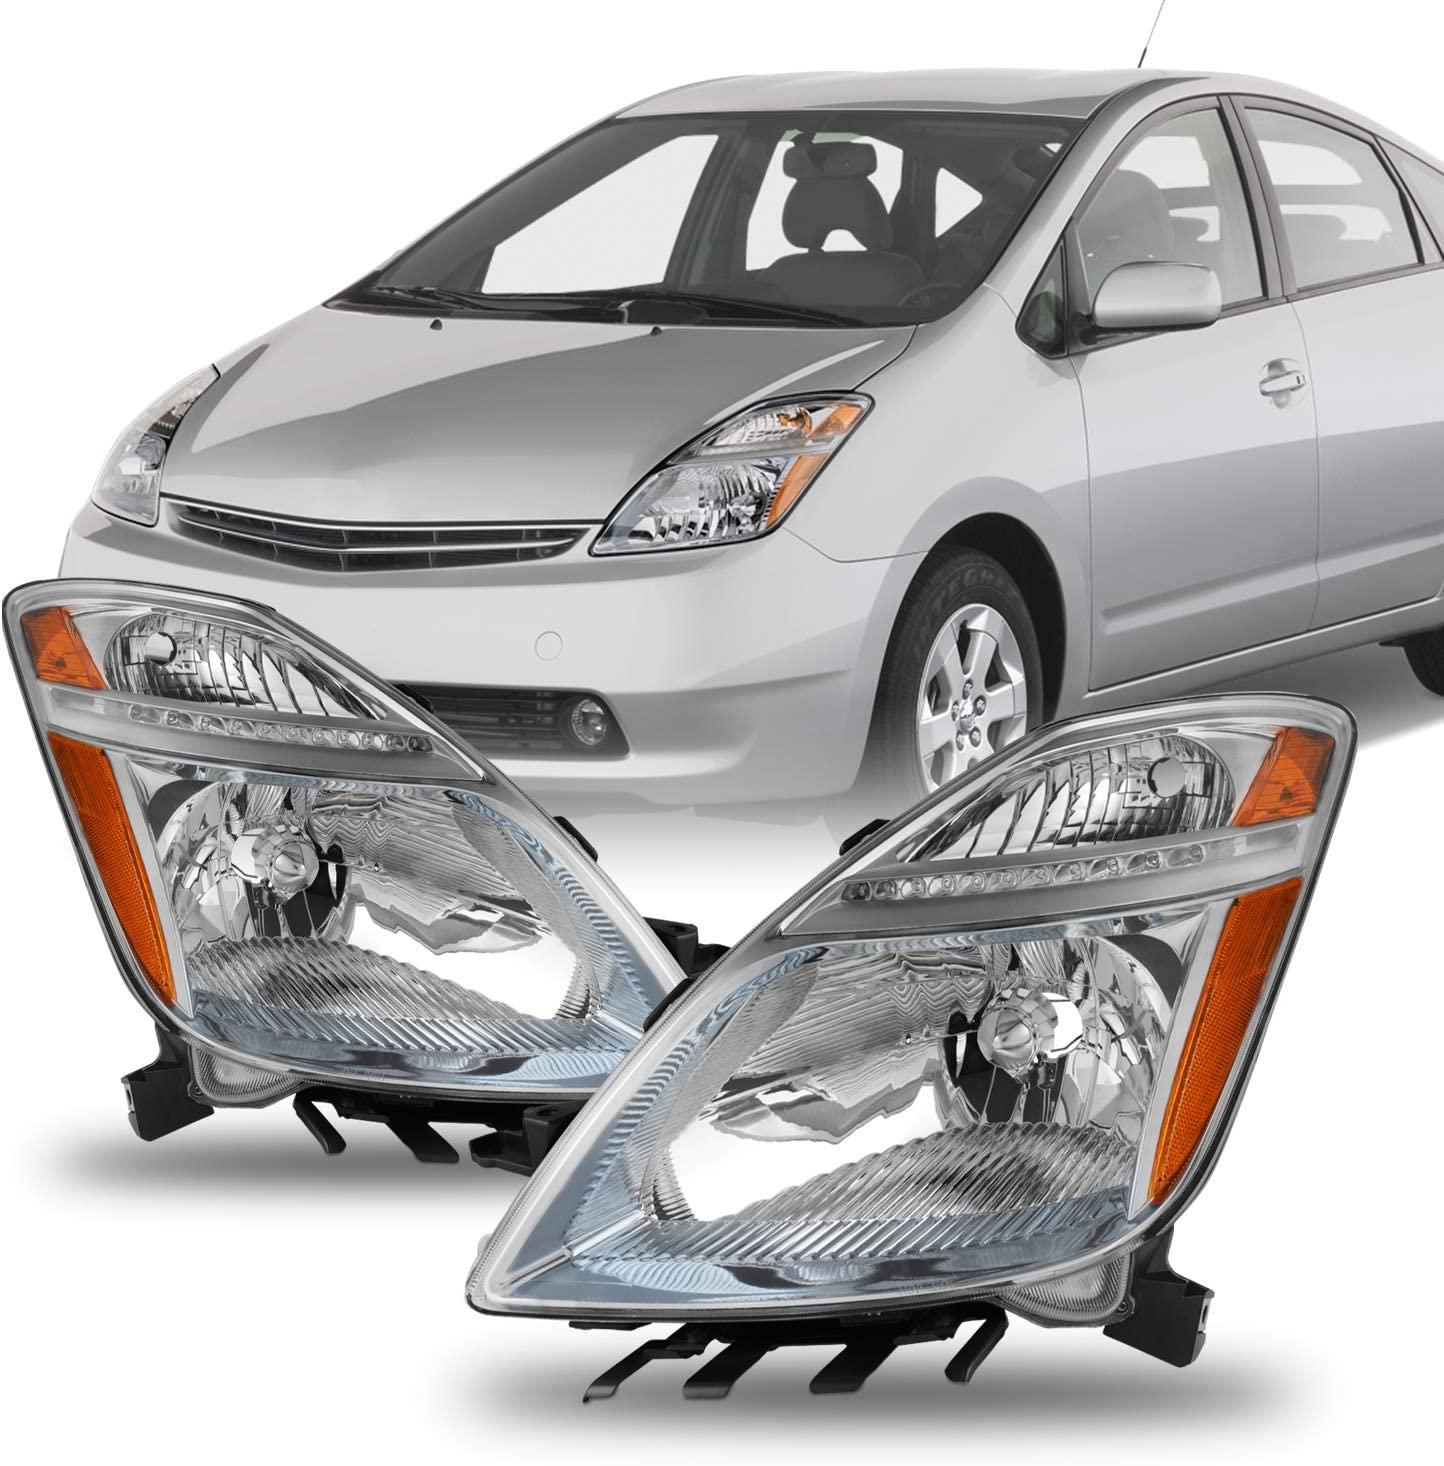 [AKKON] For 2006-2009 Toyota Prius Hybrid OE Style Chrome Headlights Driver Left Side Assembly